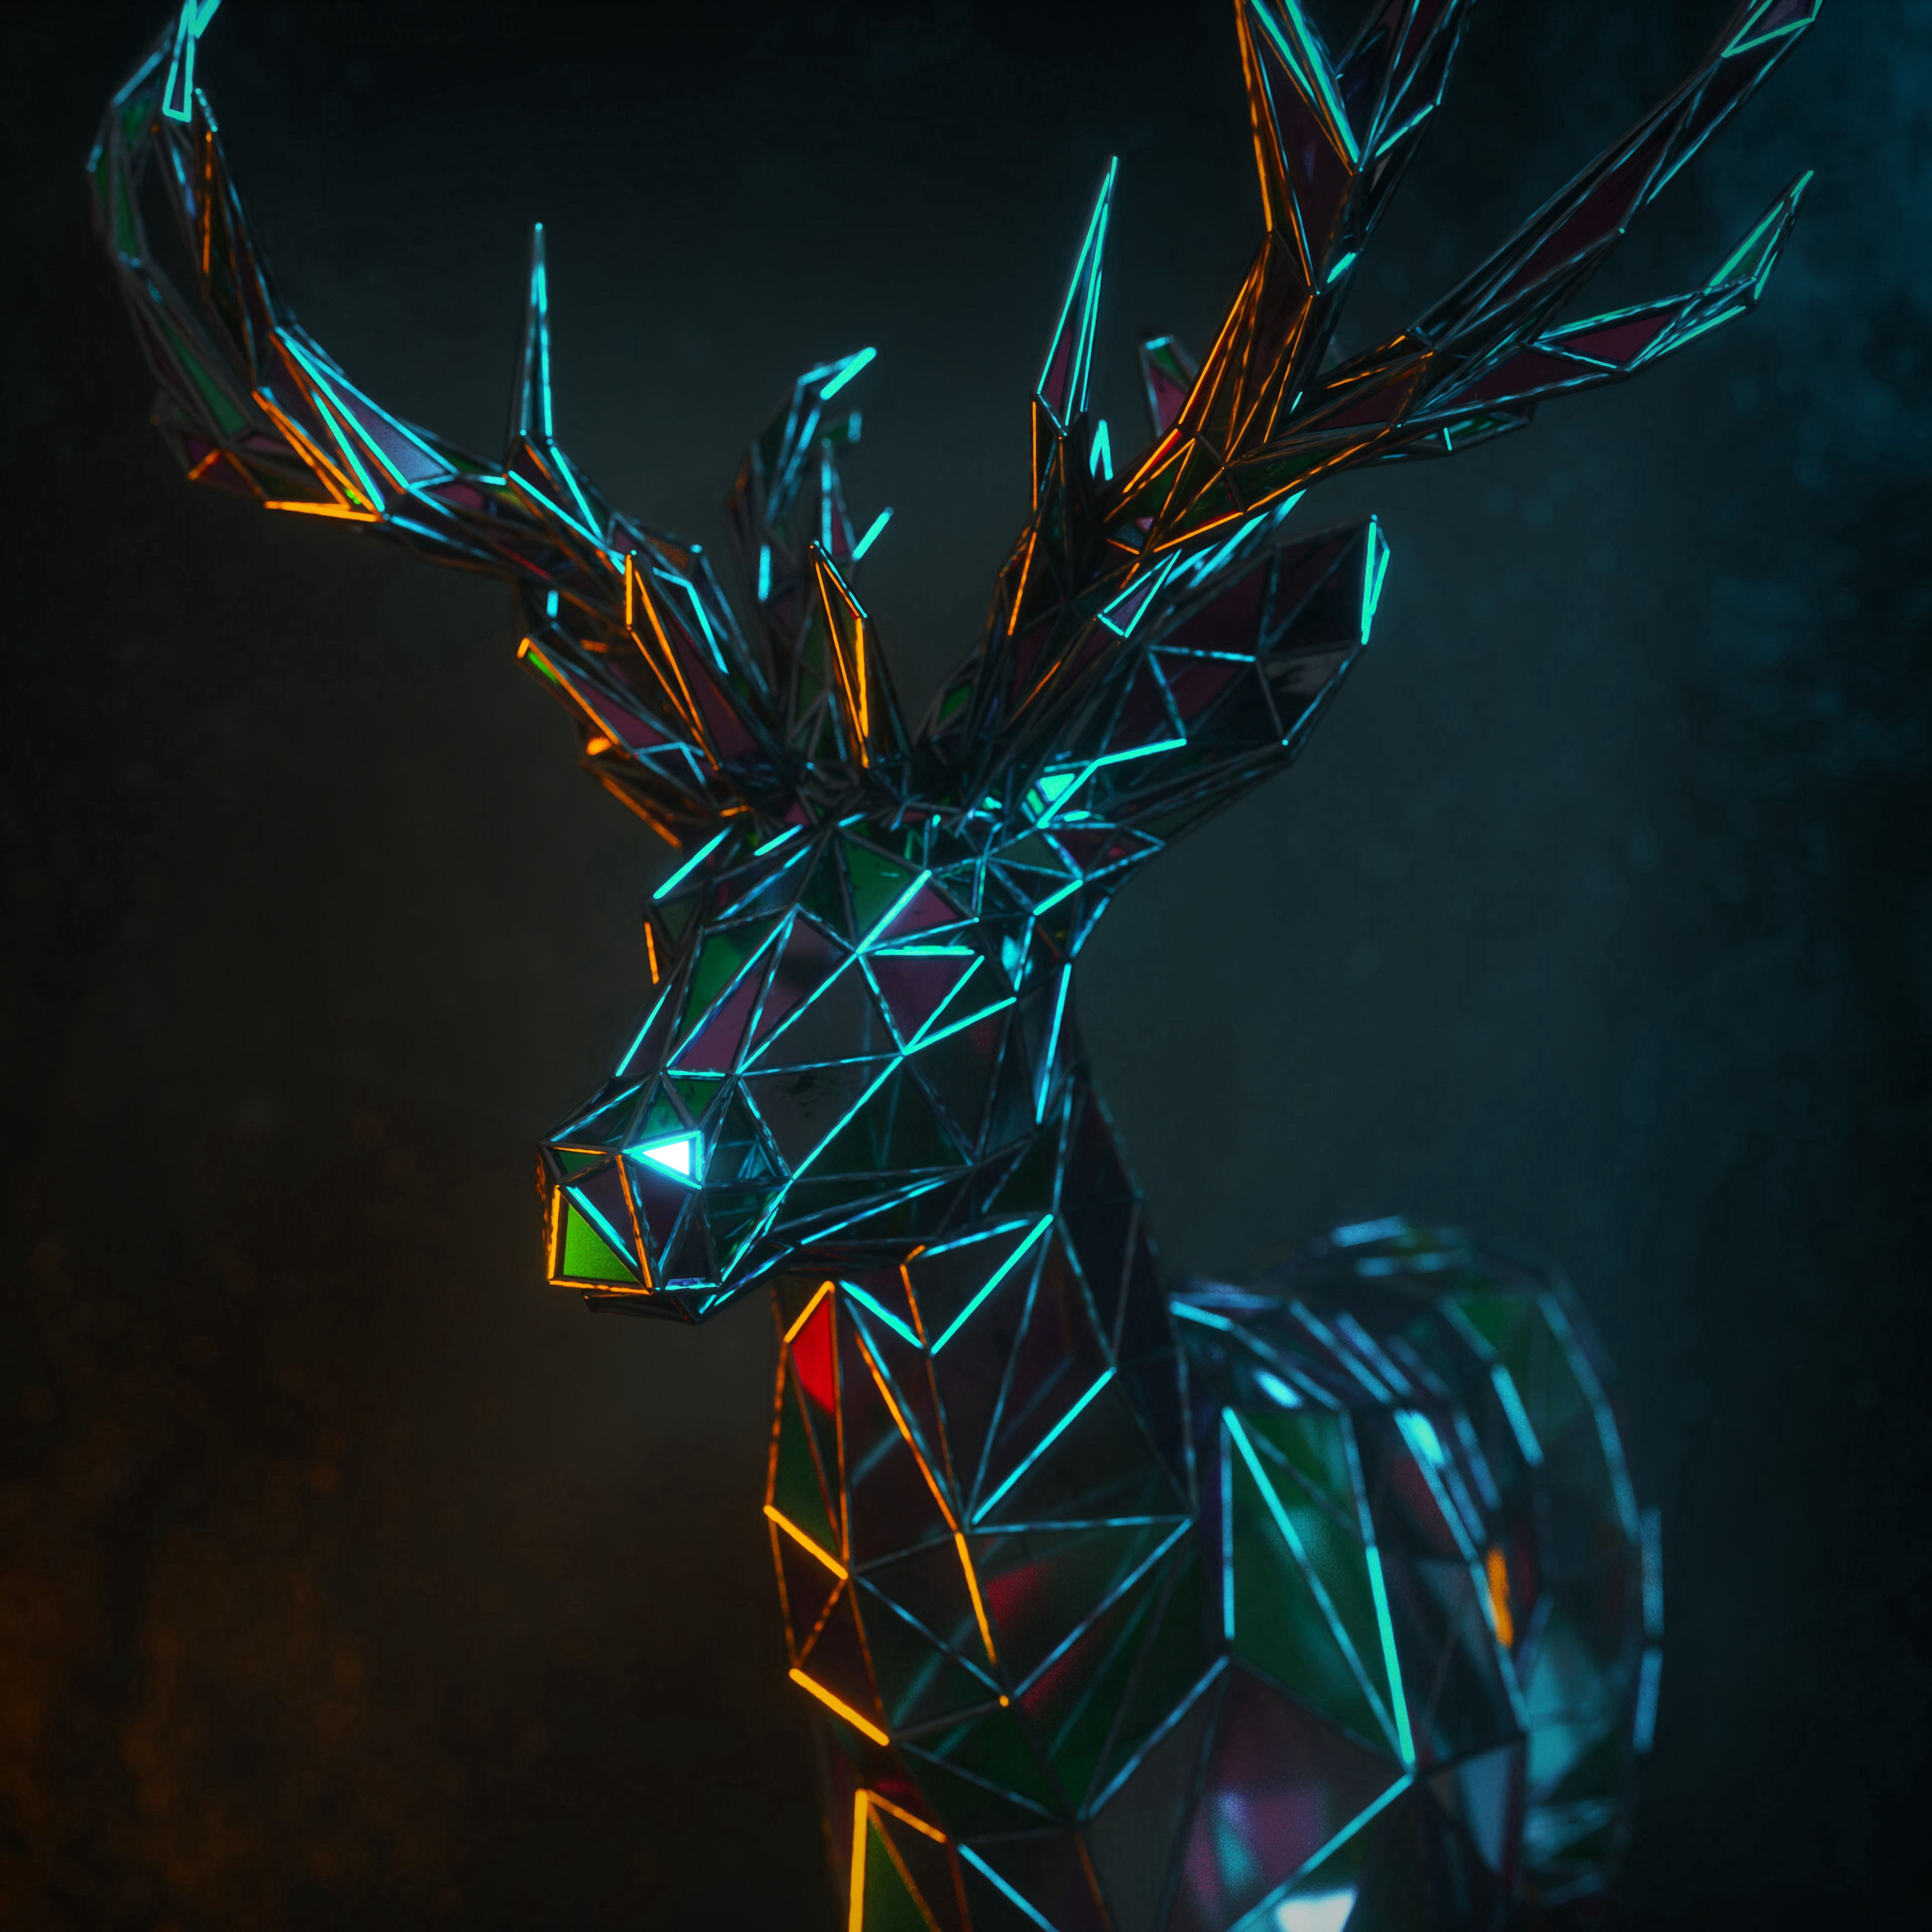 83536 download wallpaper Deer, 3D, Polygon, Figure, Geometric screensavers and pictures for free